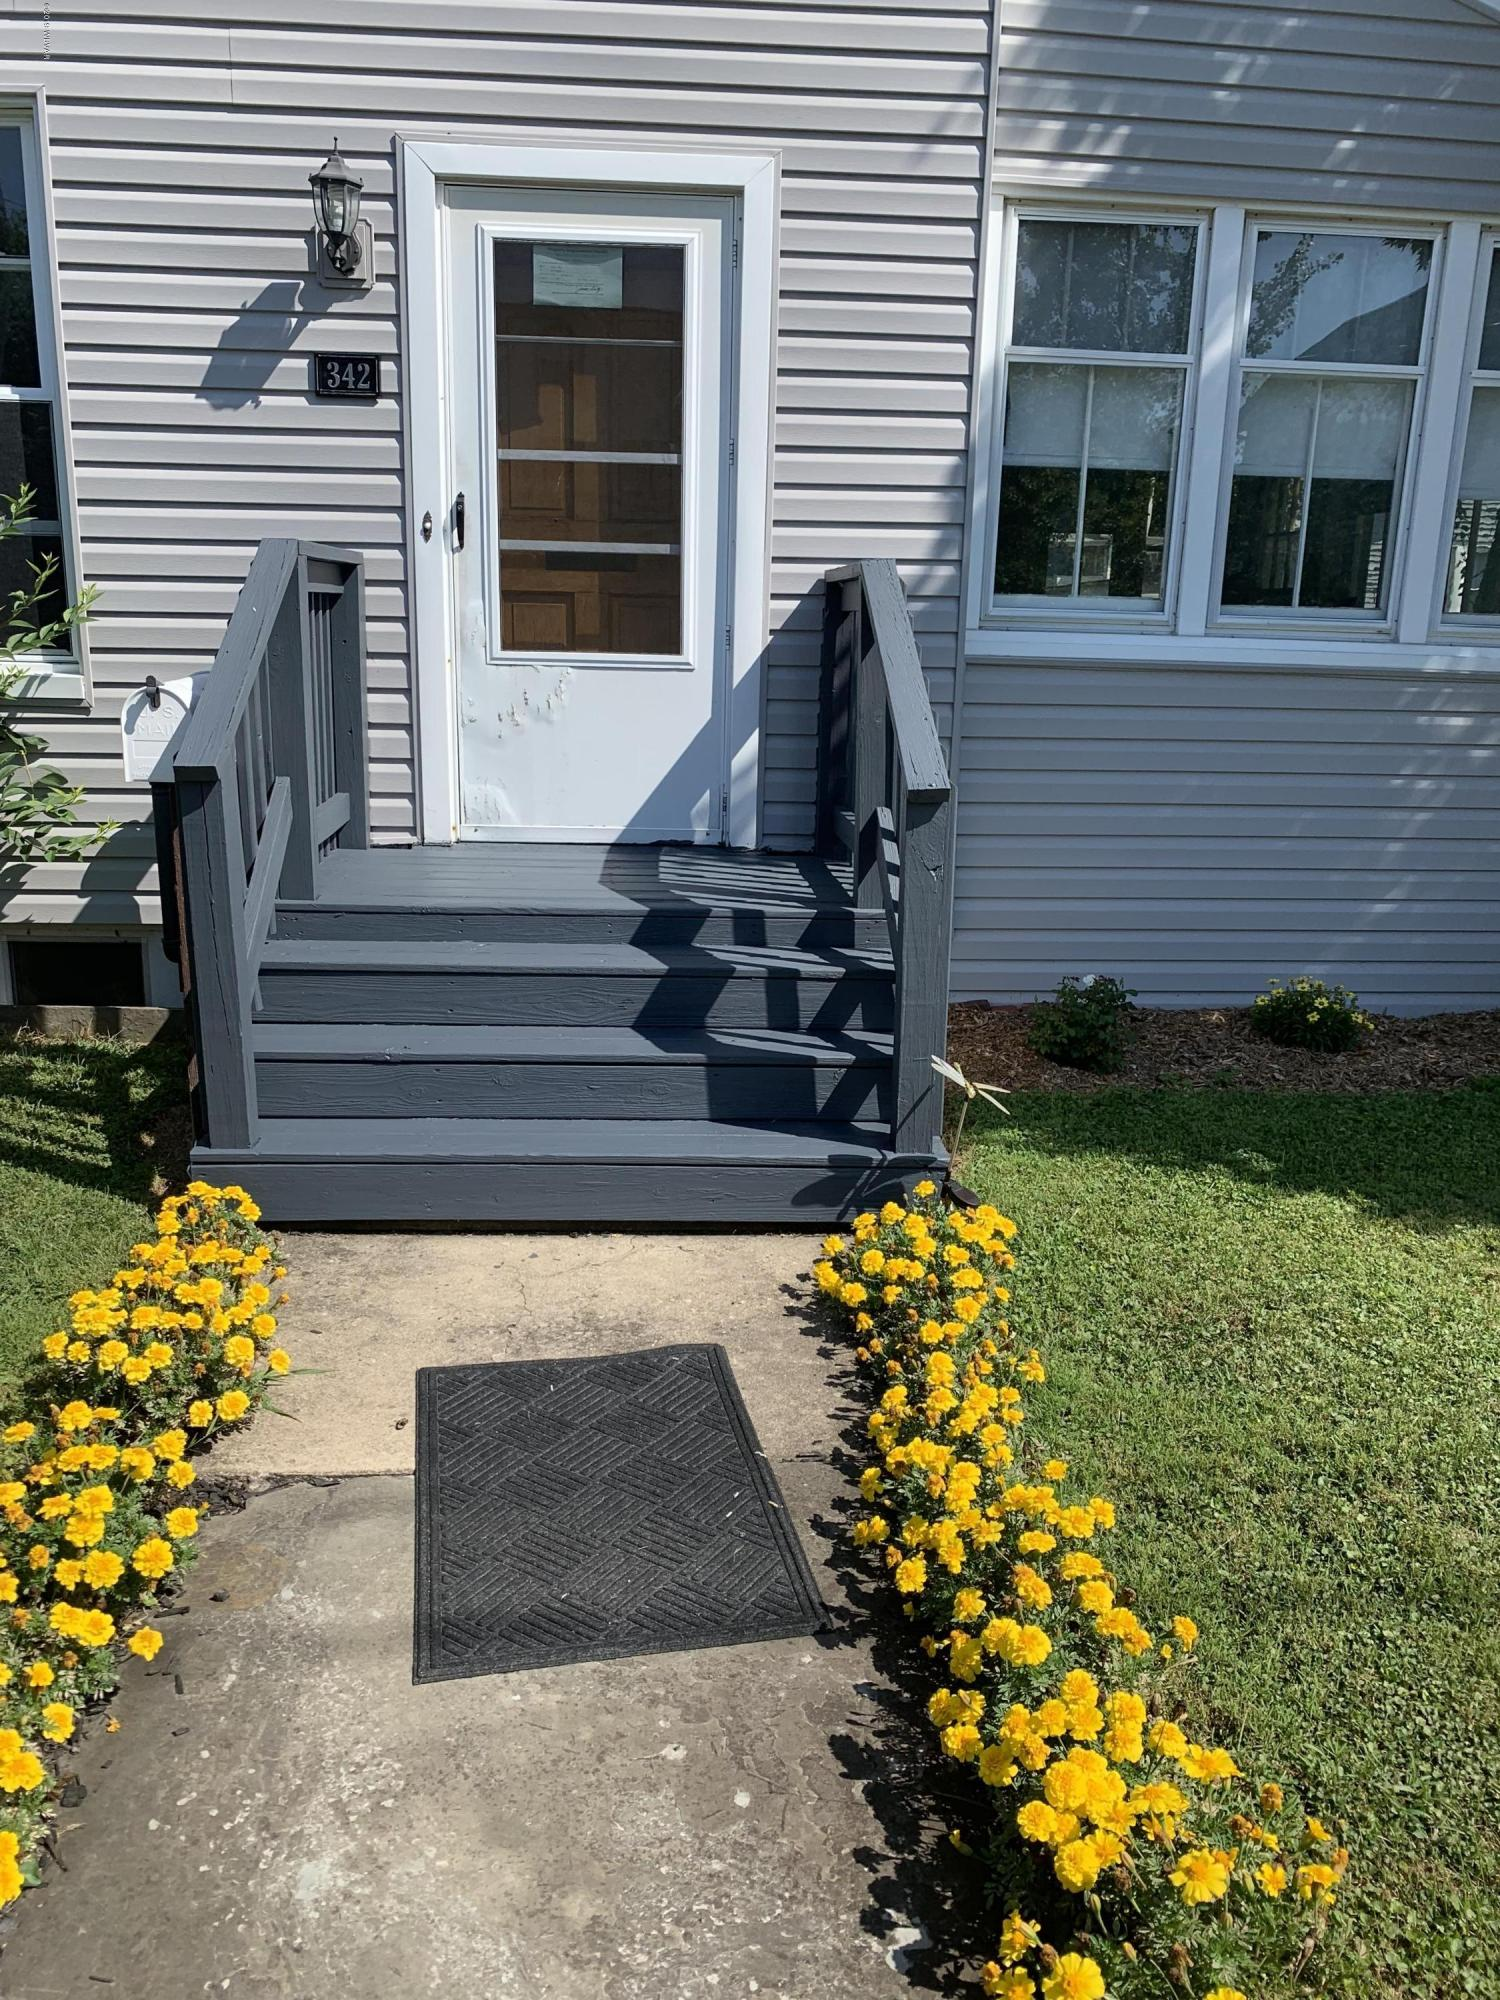 342 CEMETERY STREET,Jersey Shore,PA 17740,3 Bedrooms Bedrooms,1 BathroomBathrooms,Residential,CEMETERY,WB-88231